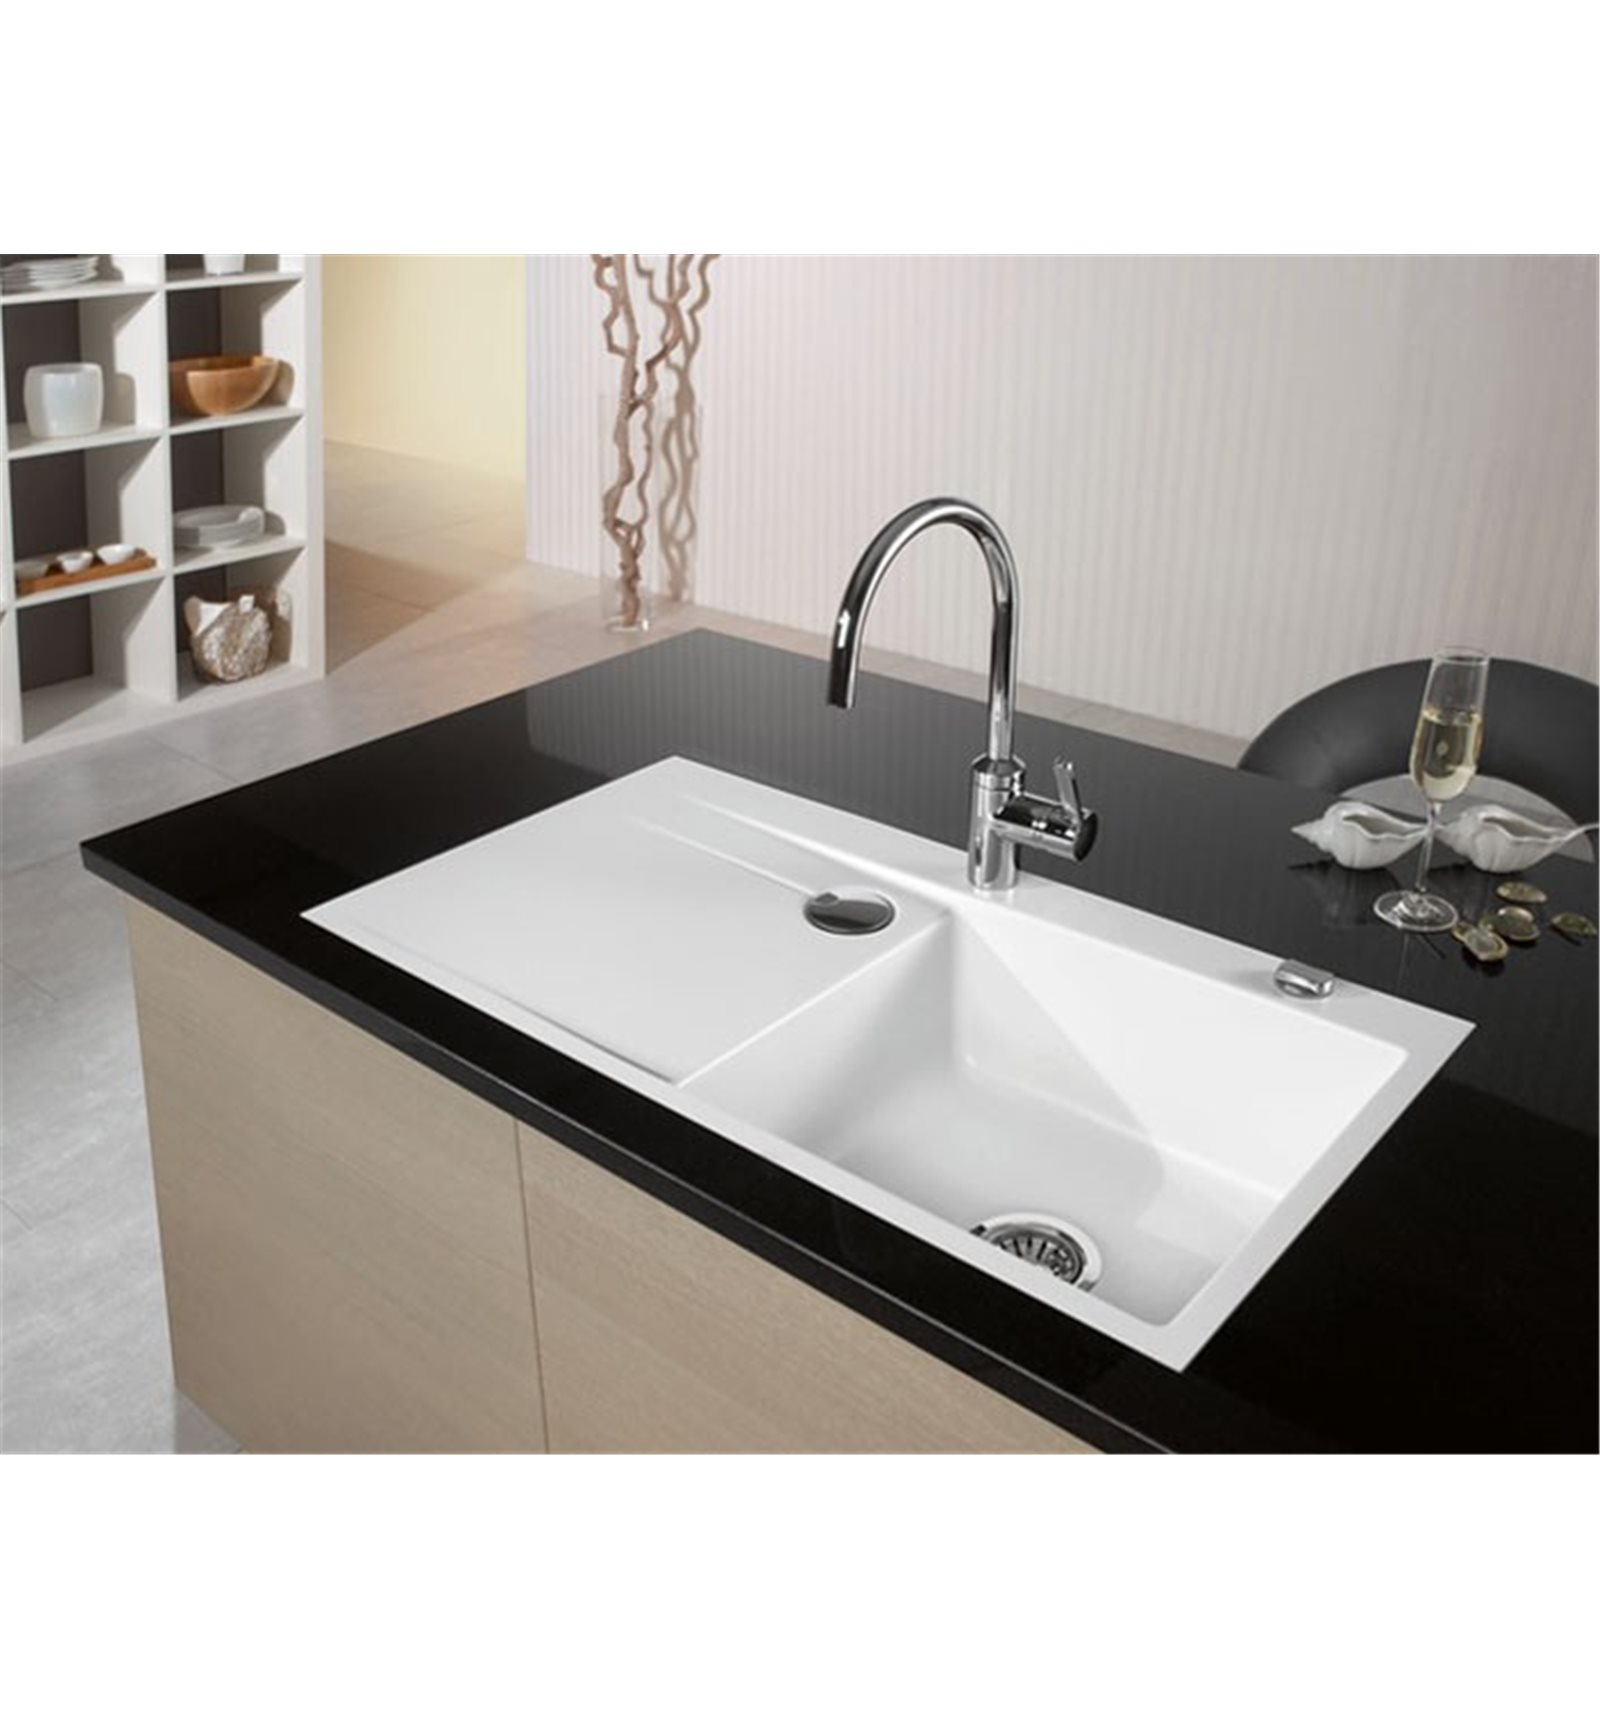 Systemceram Stema 90 Ceramic Kitchen Sink